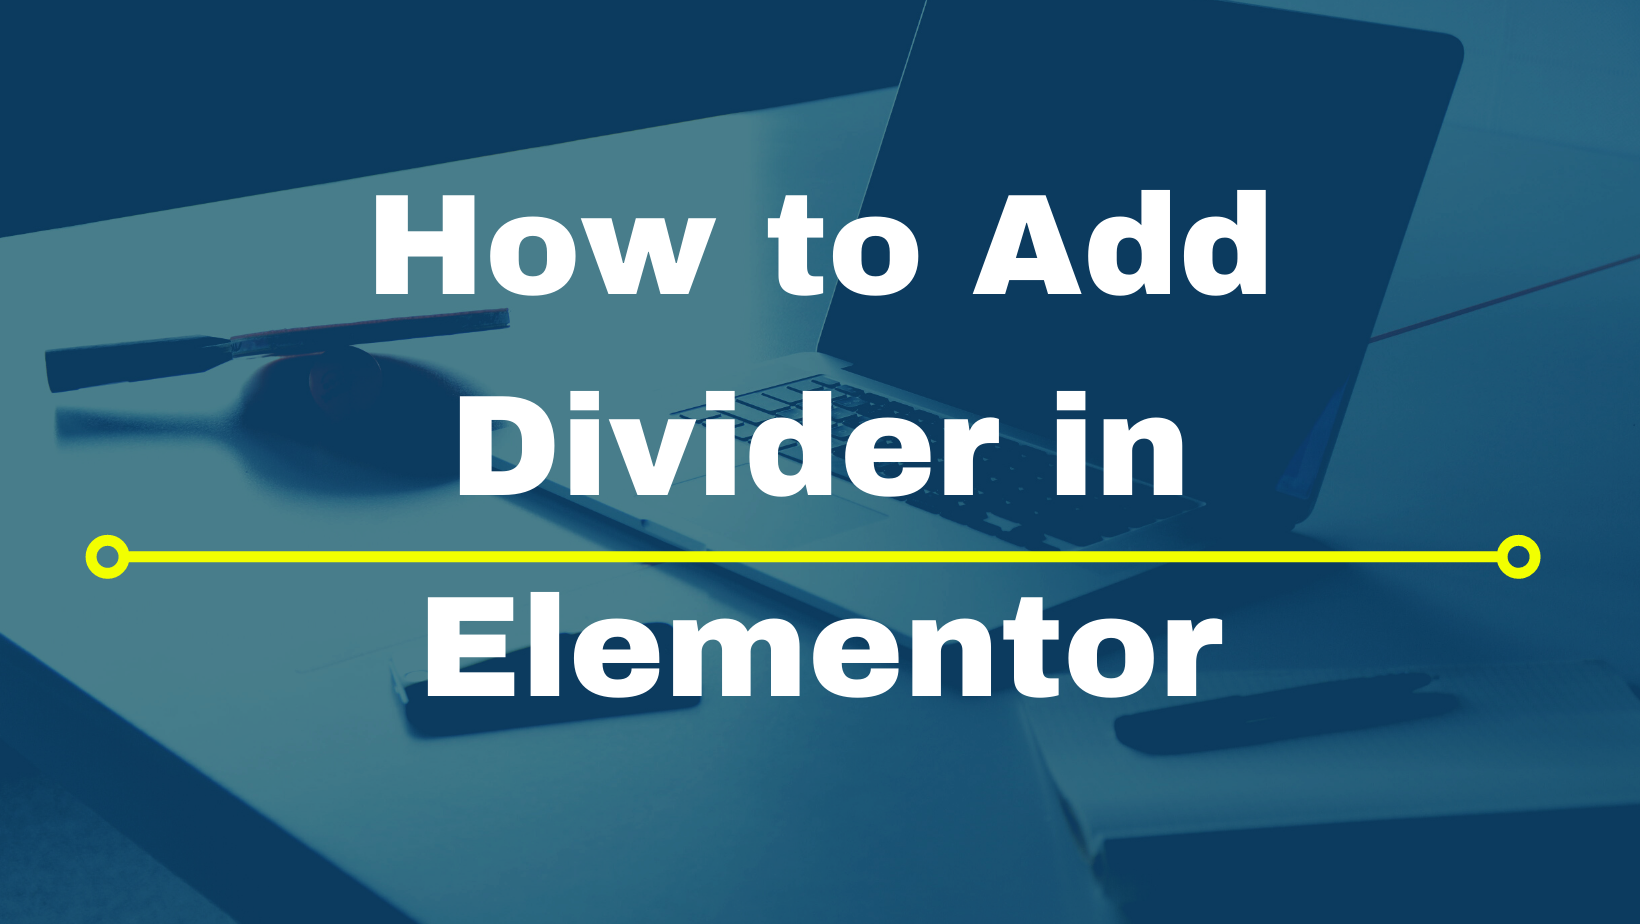 How to Add Divider in Elementor